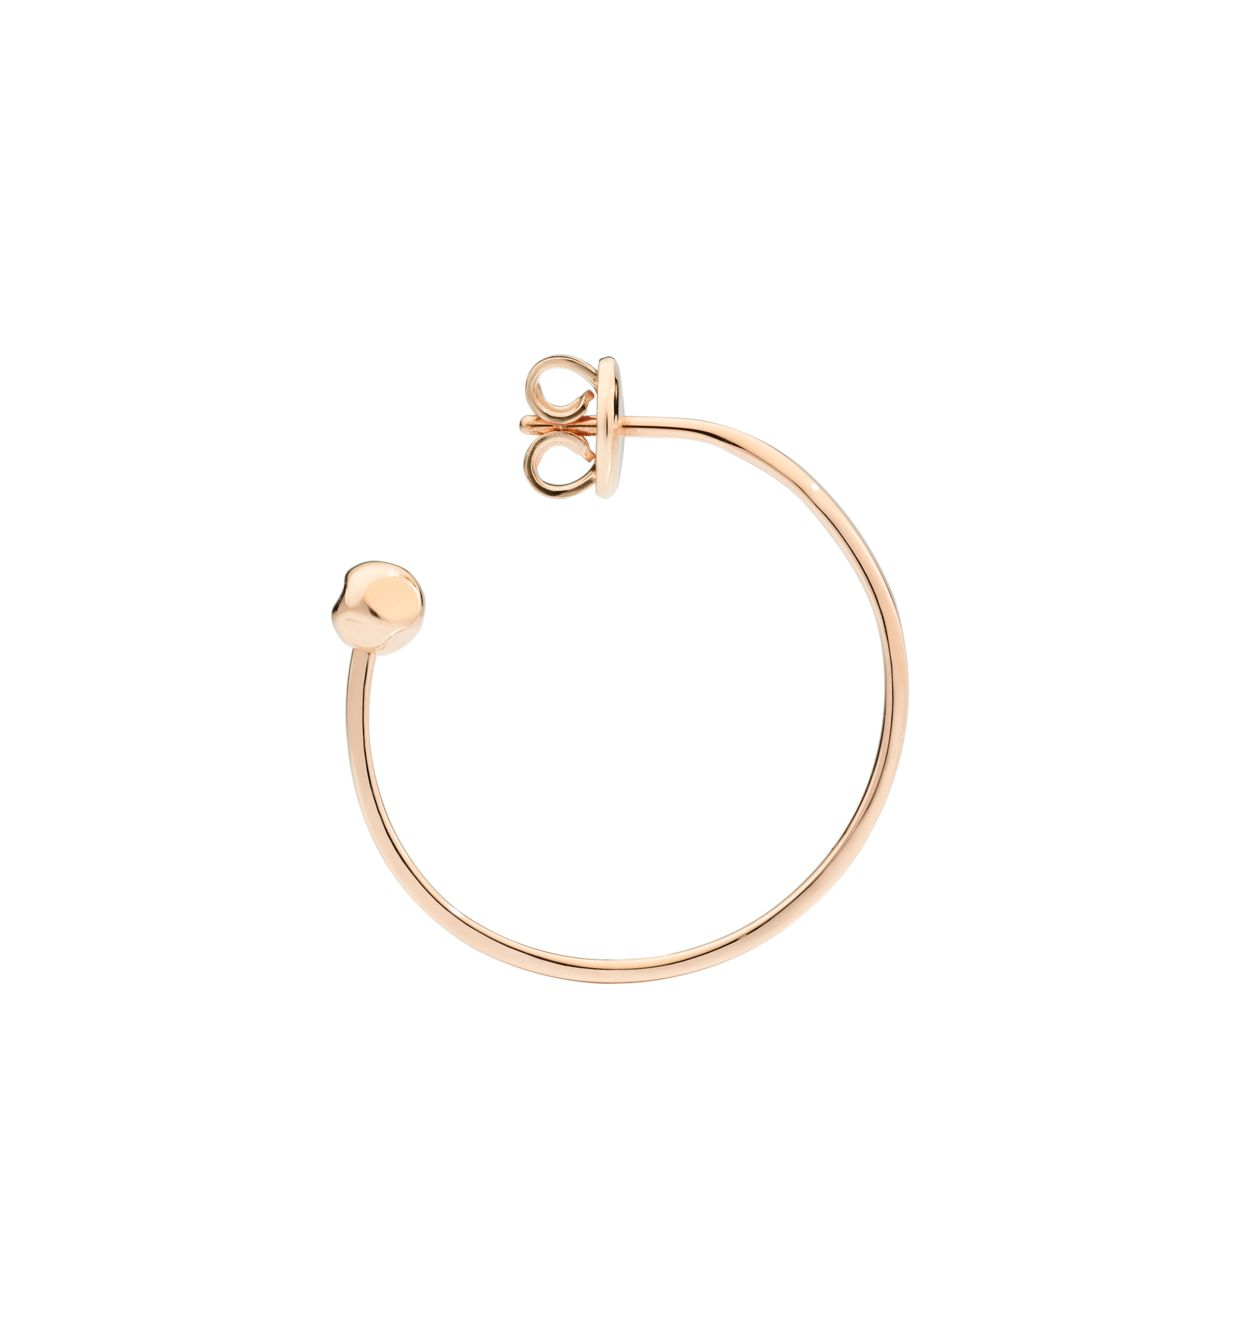 DoDo Bangle Hoop Earring in 9k Rose Gold (single) - Orsini Jewellers NZ